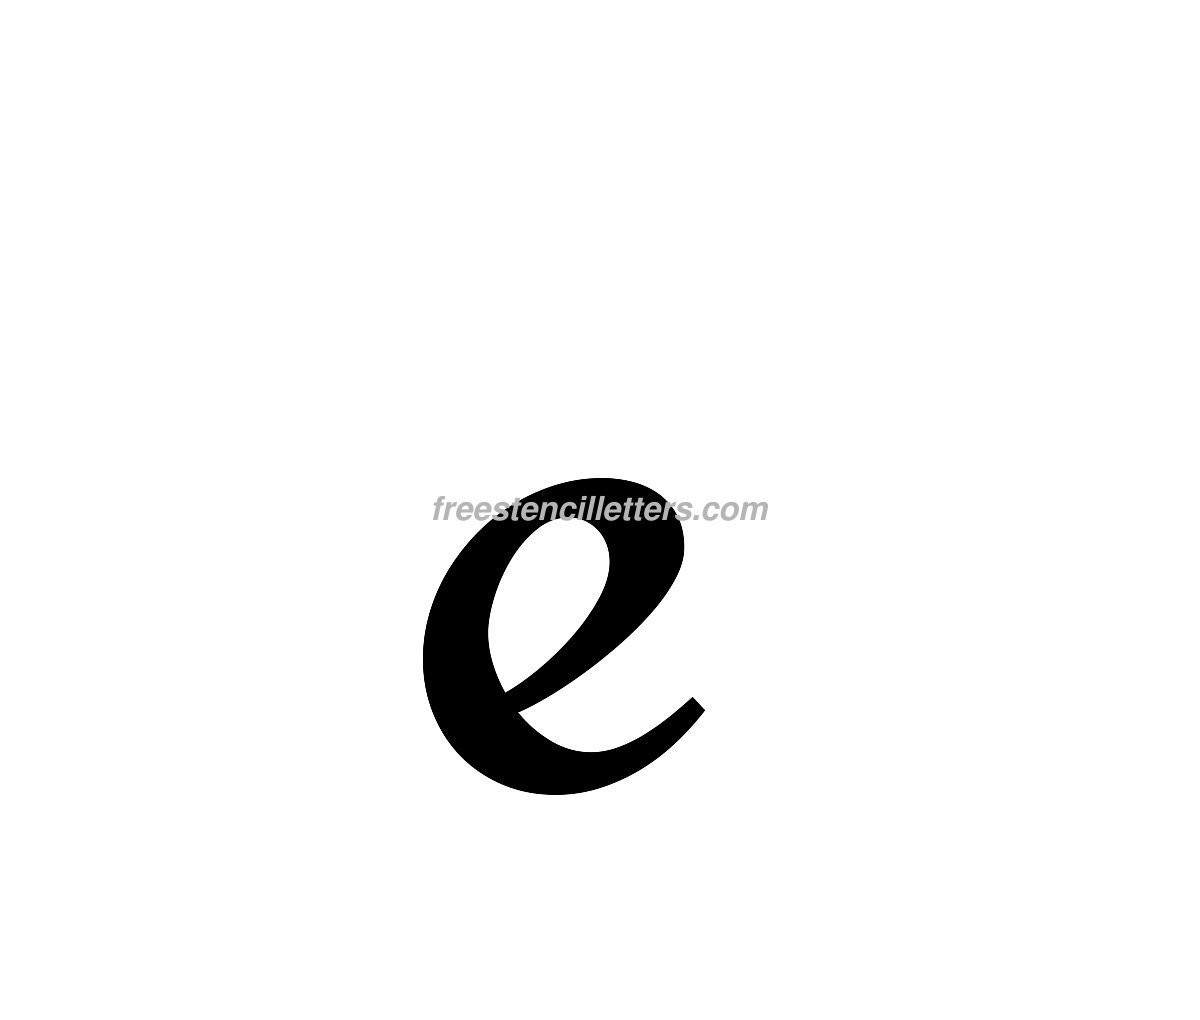 Alphabet E letters to print and cut out free - Print Lowercase E Letter Stencil